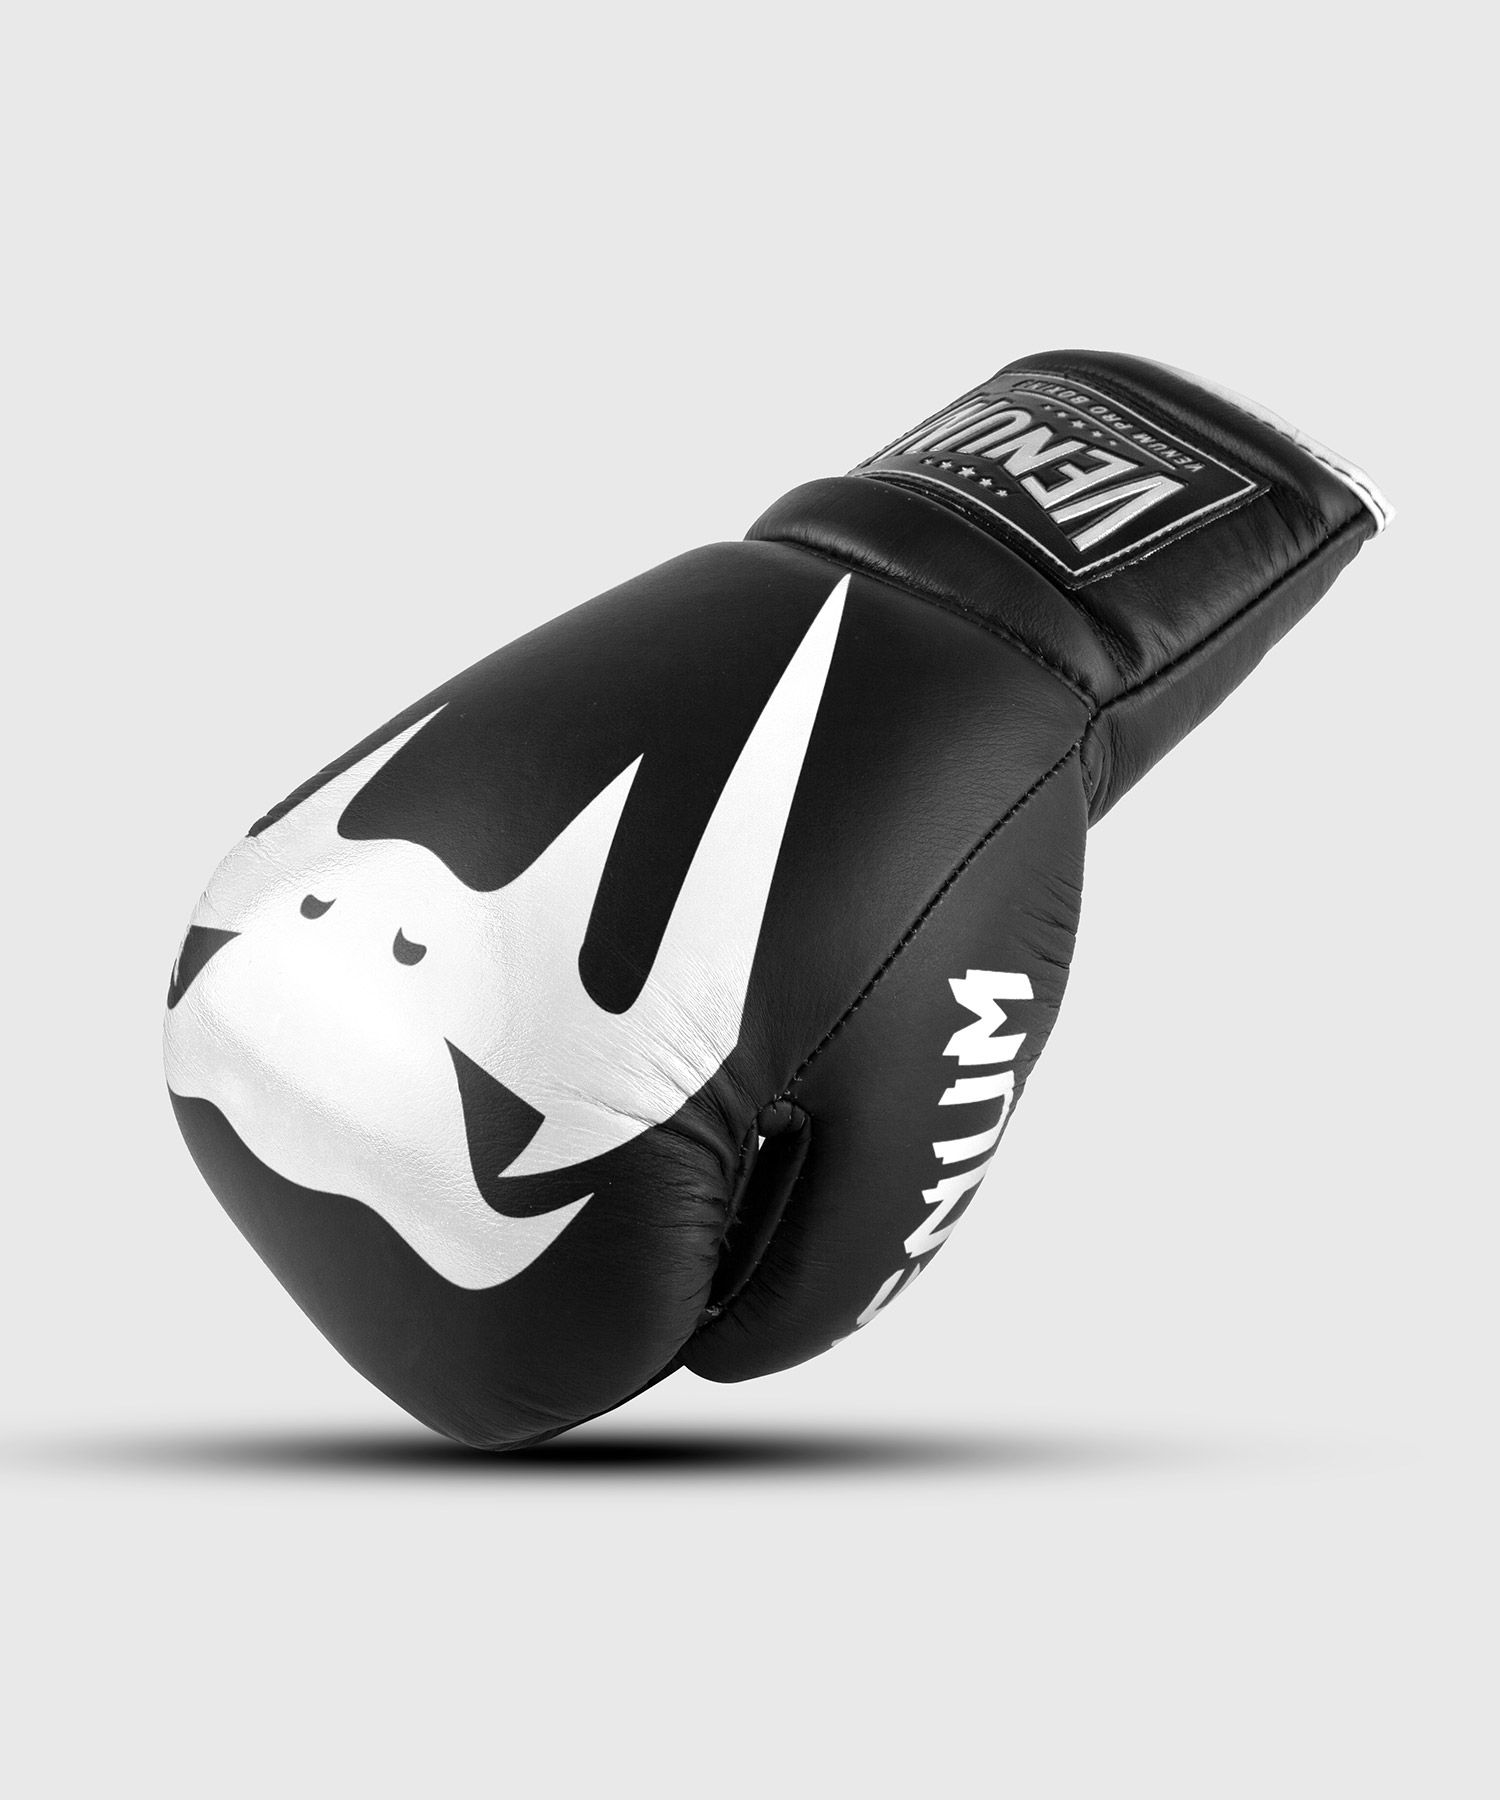 Venum Giant 2.0 Pro Boxing Gloves - With Laces - Black/White